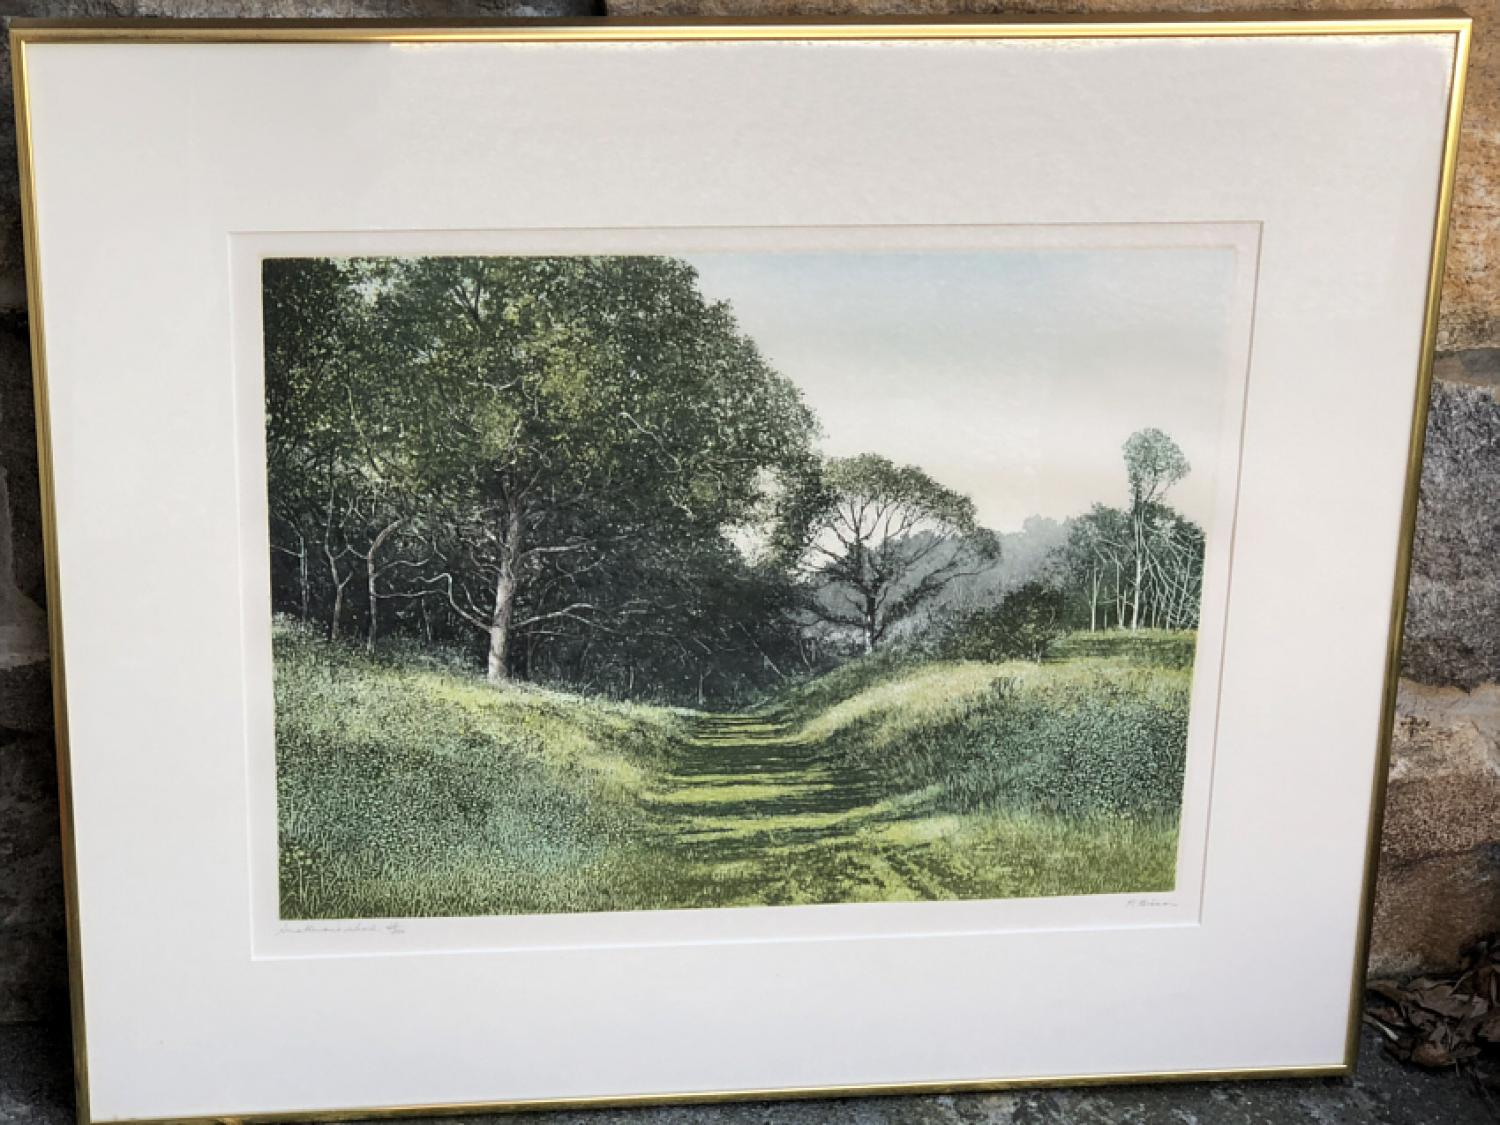 Sullivans woos by P  Bisson lithograph 38 of 350